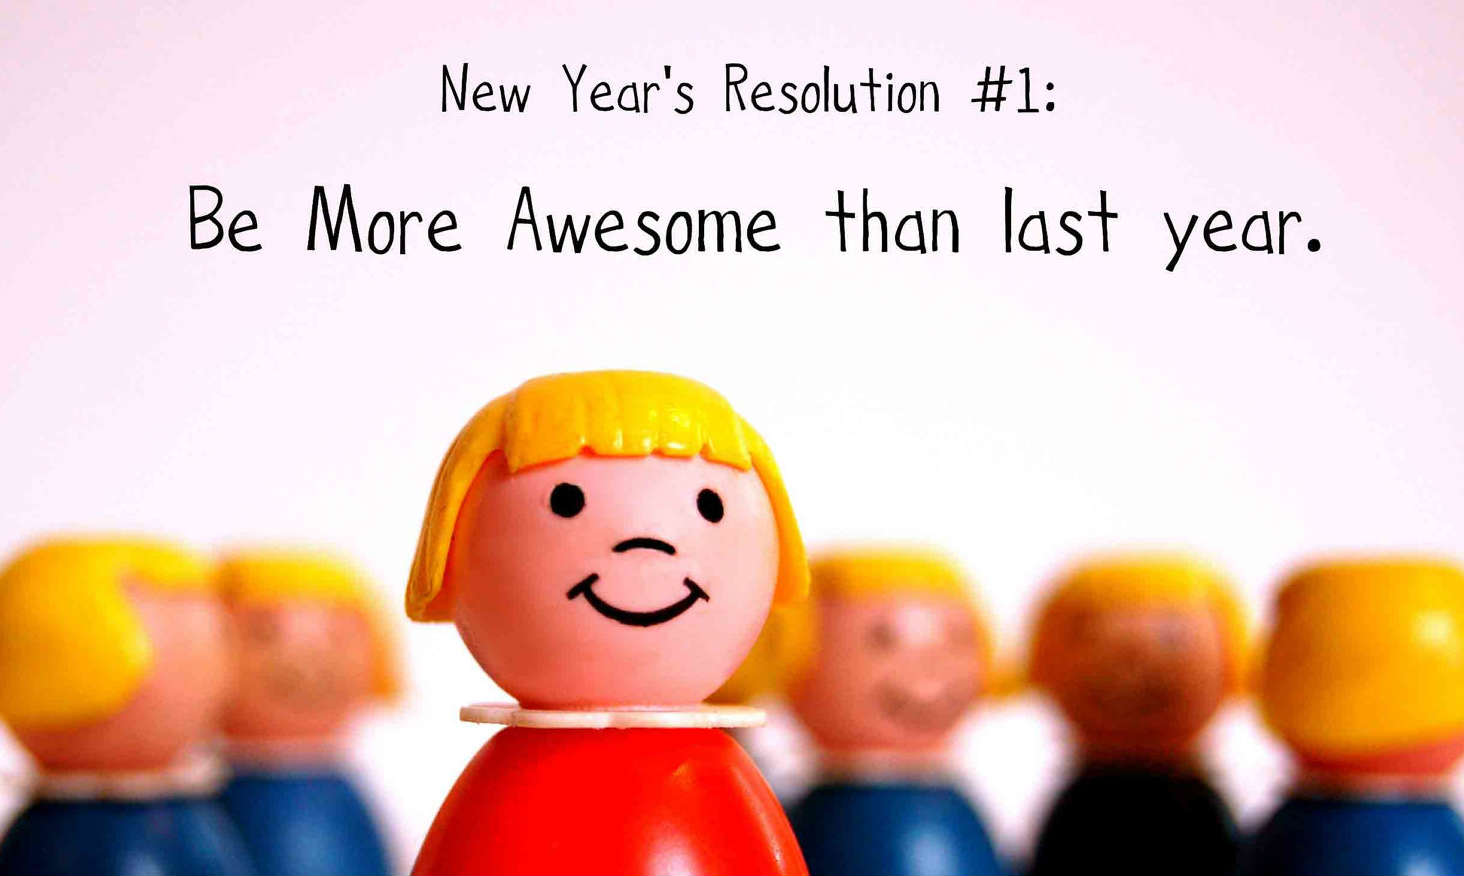 New year resolution ideas: More awesome than last year!